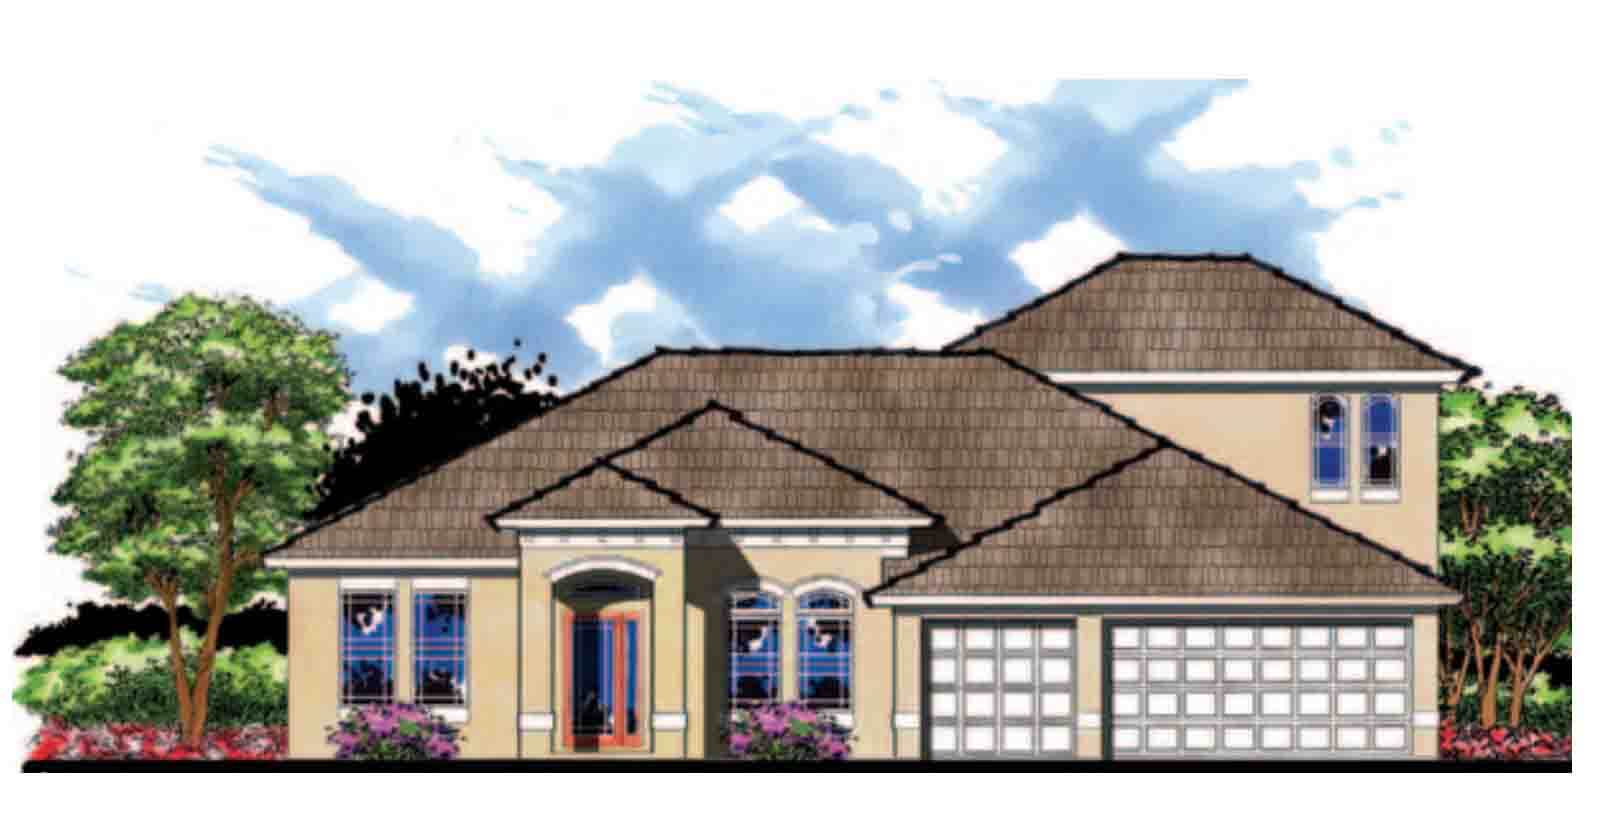 Floor Plans,2,501 SQ FT TO 3,000 SQ FT,1071